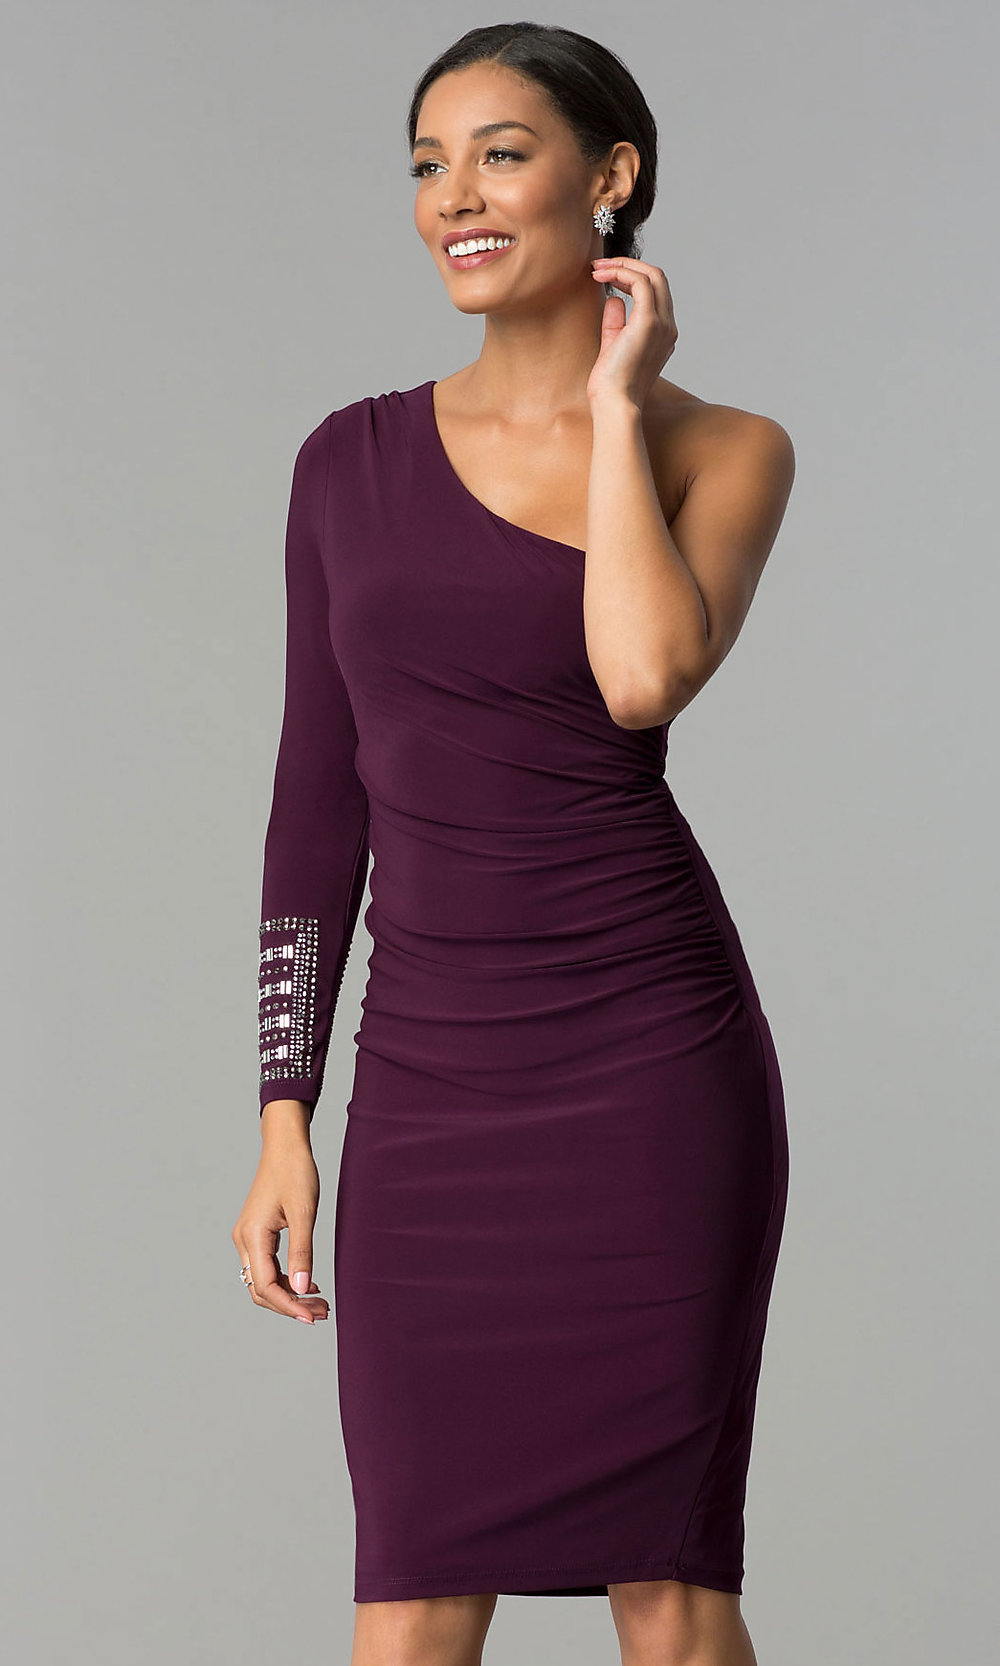 Long-Sleeve One-Shoulder Party Dress - PromGirl